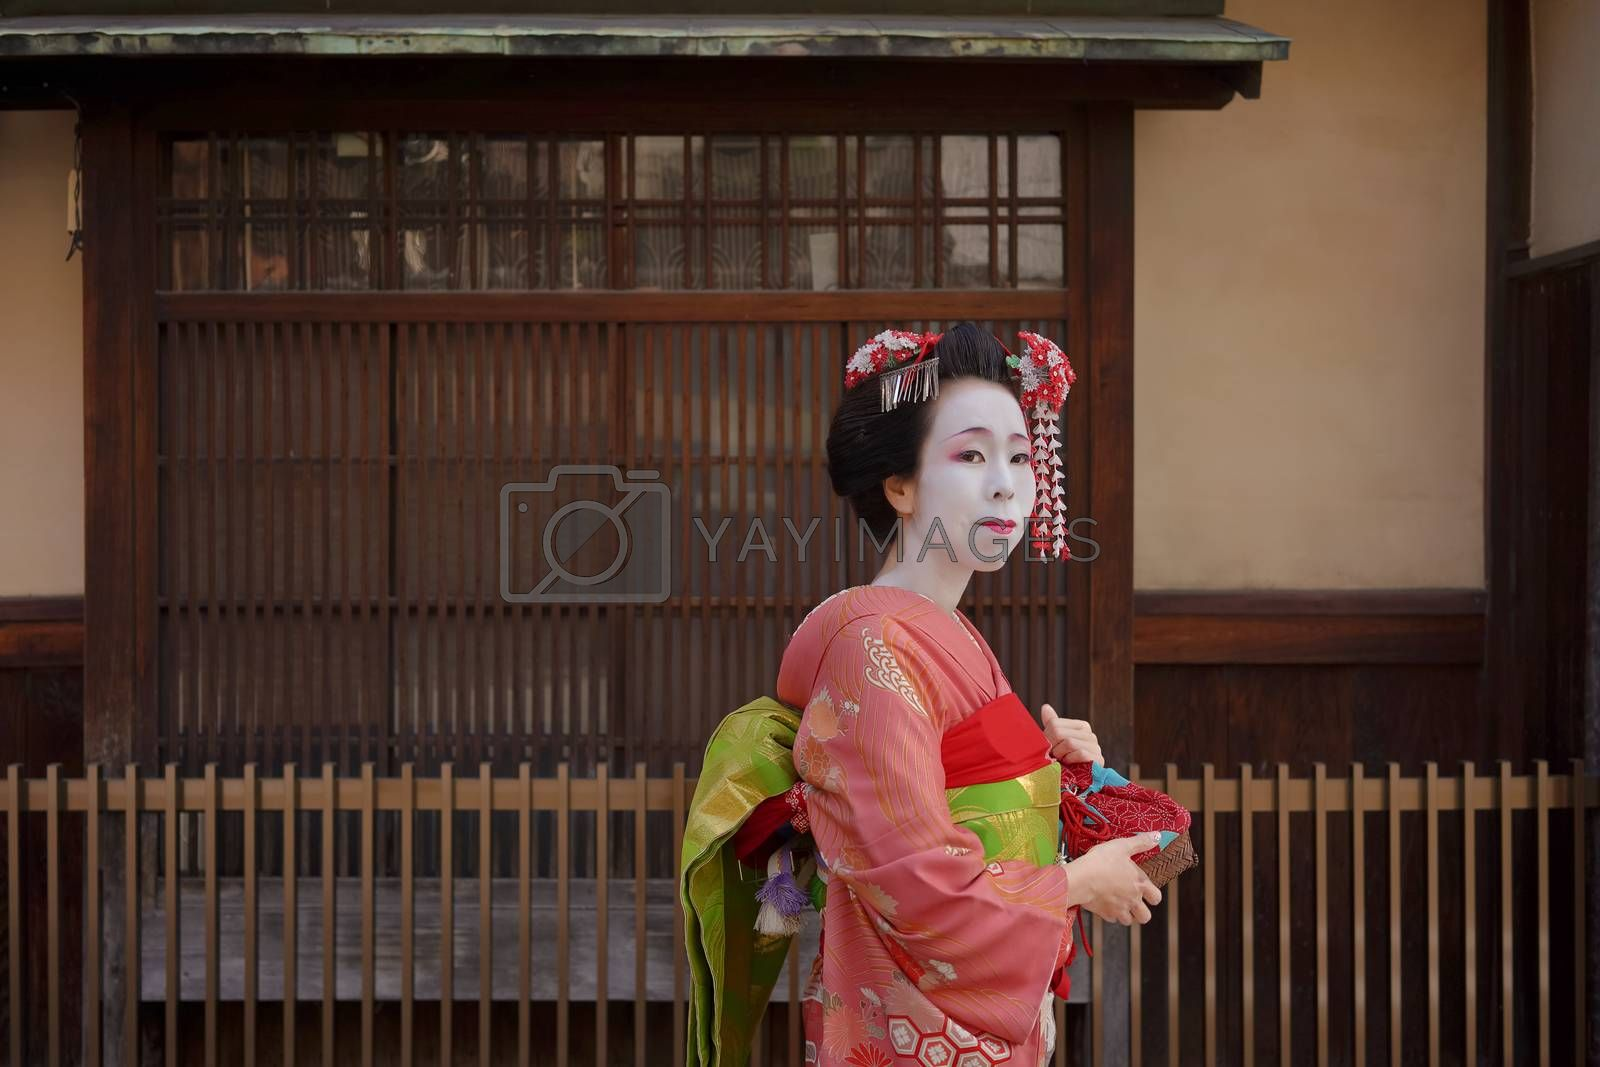 Maiko in a kimono walking in front of the gate of a traditional Japanese house in Kyoto.